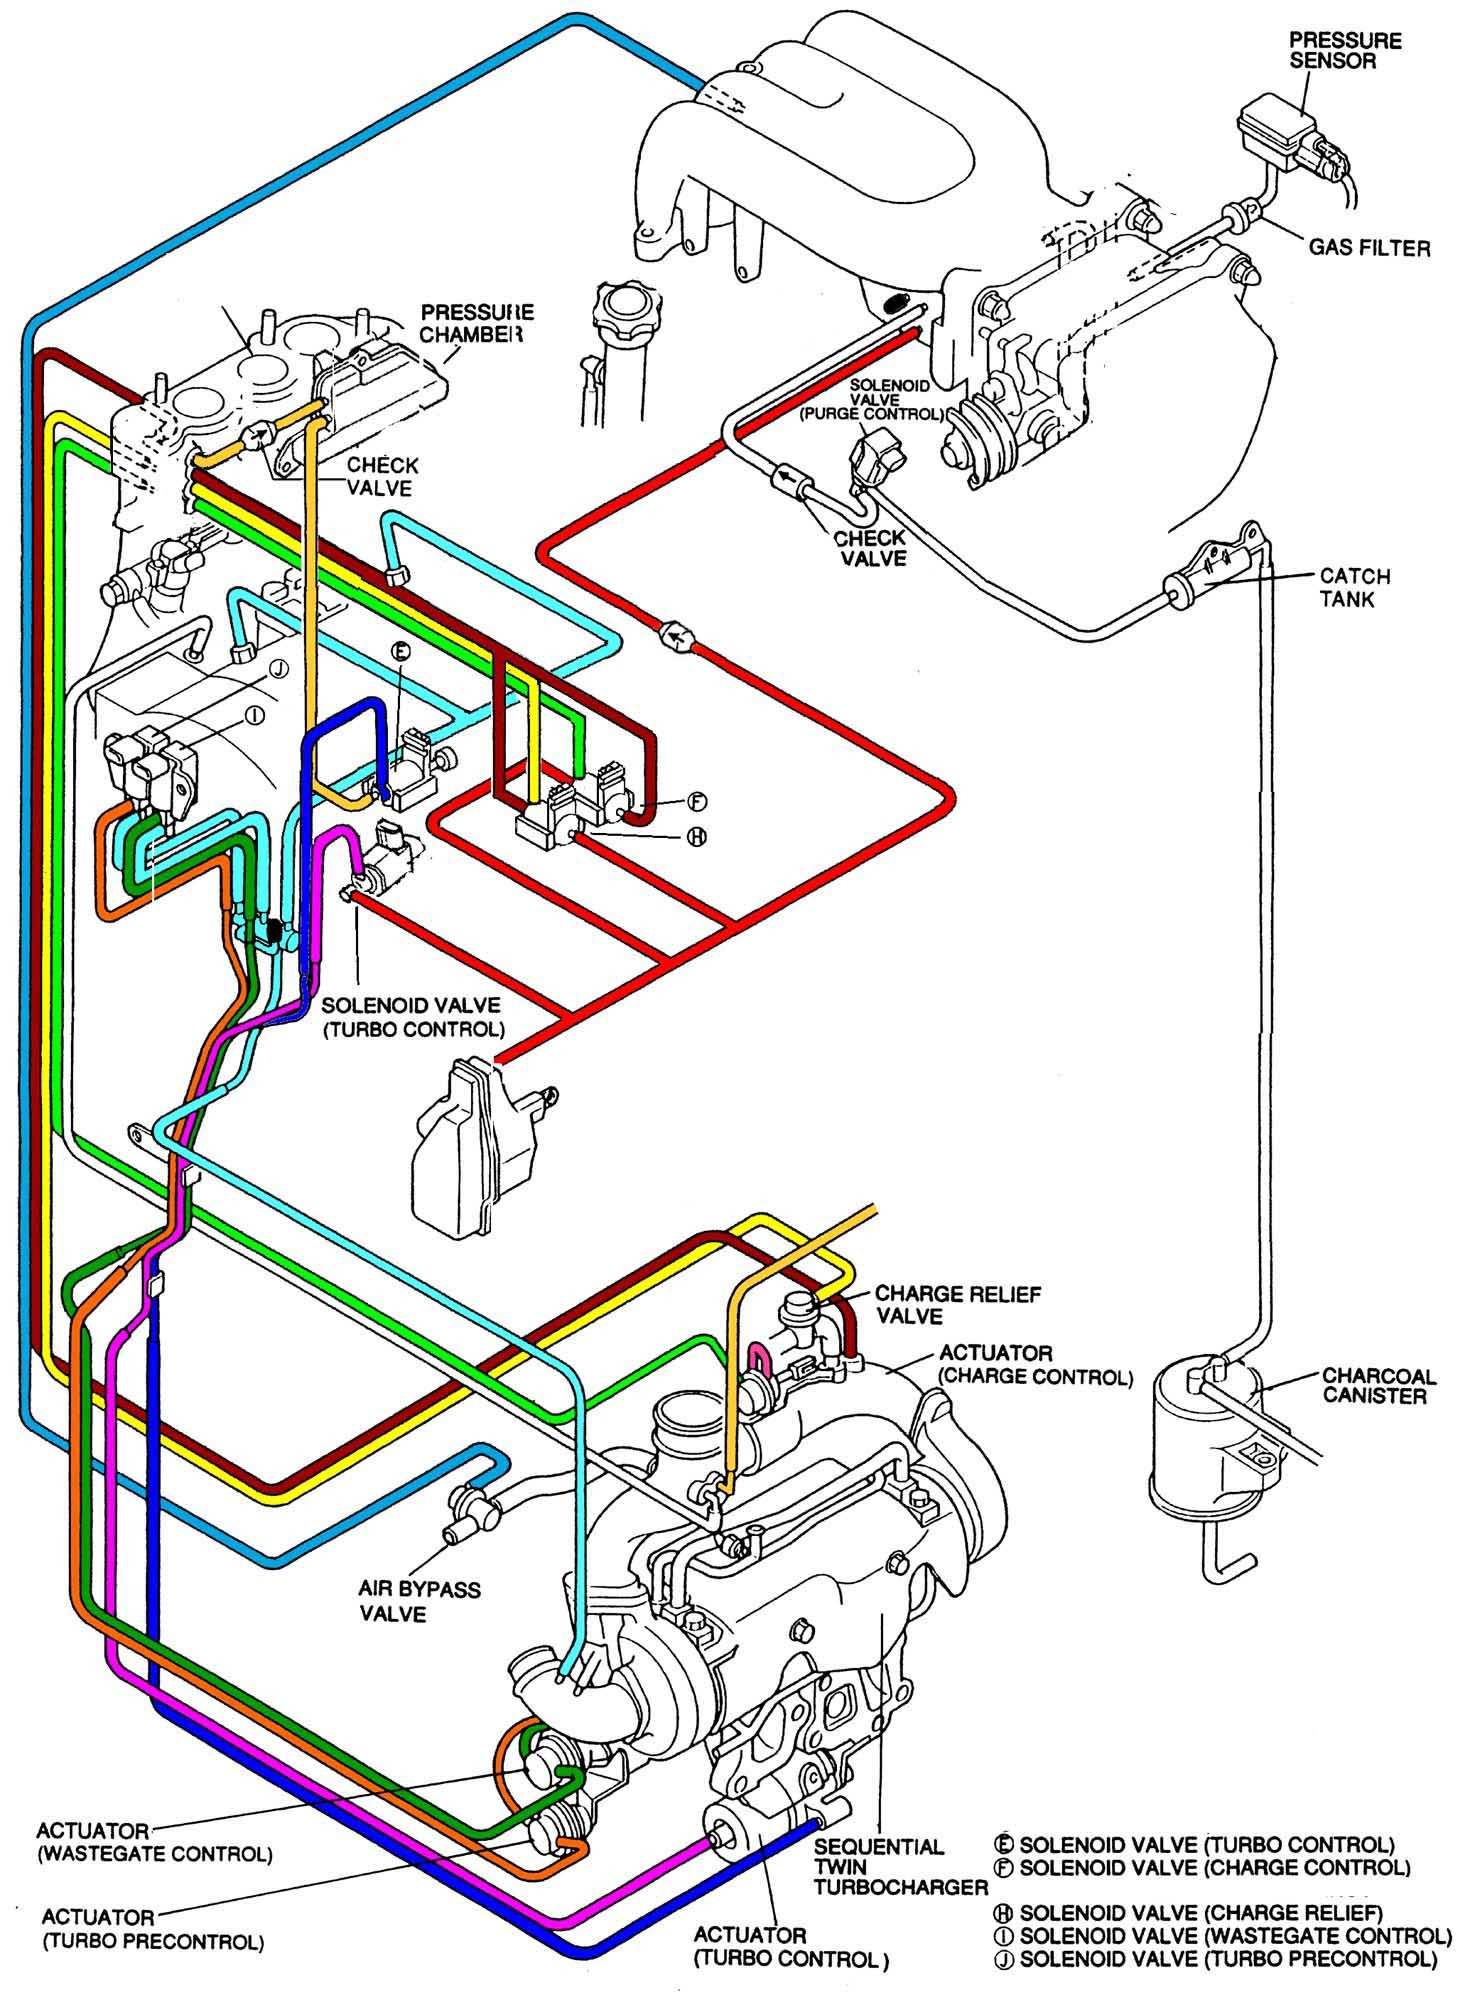 Engine Oil System Diagram Pound Vs Sequential Vs True Twins Turbo S Dodge Cummins Diesel Of Engine Oil System Diagram Wilbo666 1jz Gte Jzz30 soarer Engine Wiring